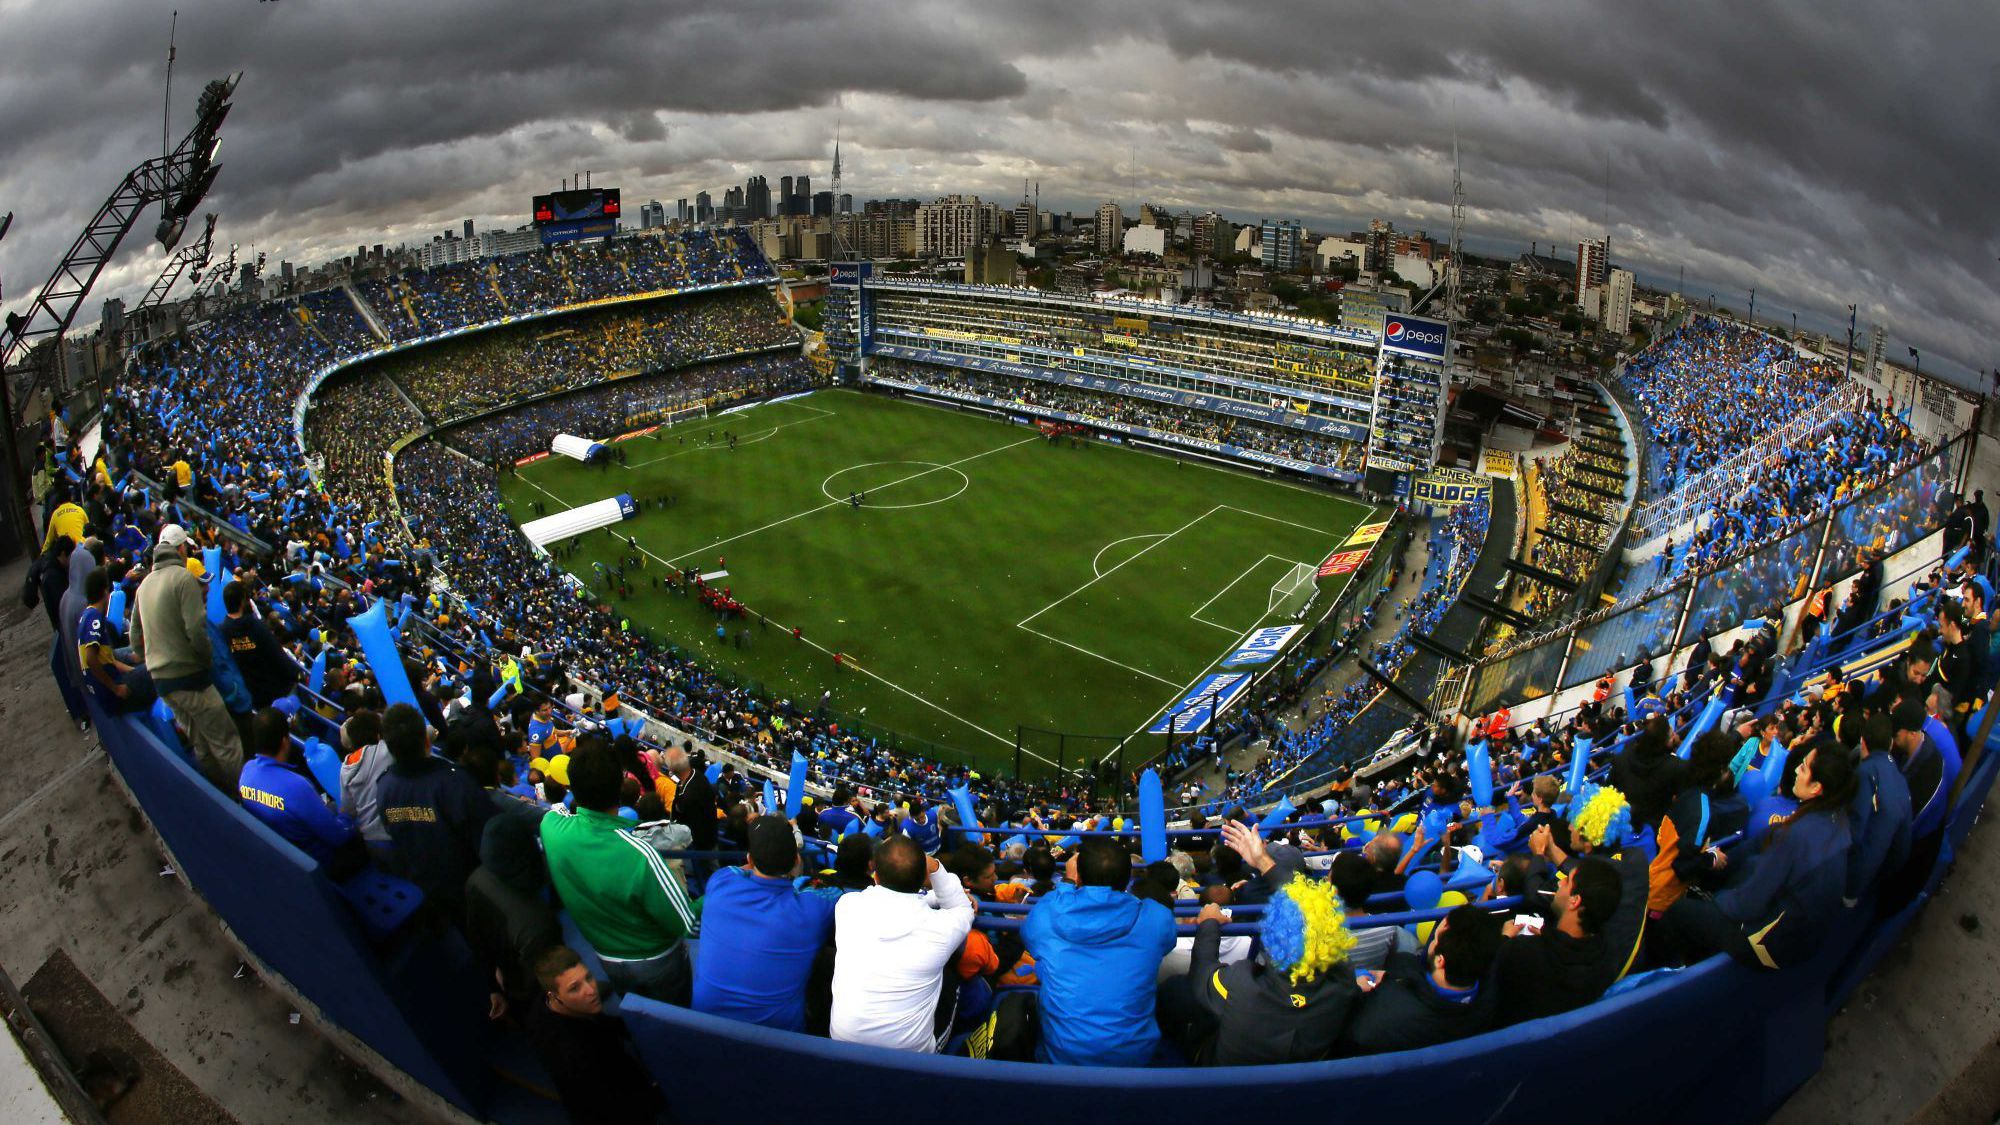 Aerial view of the fans in the stadium at a event at La Bombonera stadium in Buenos Aires